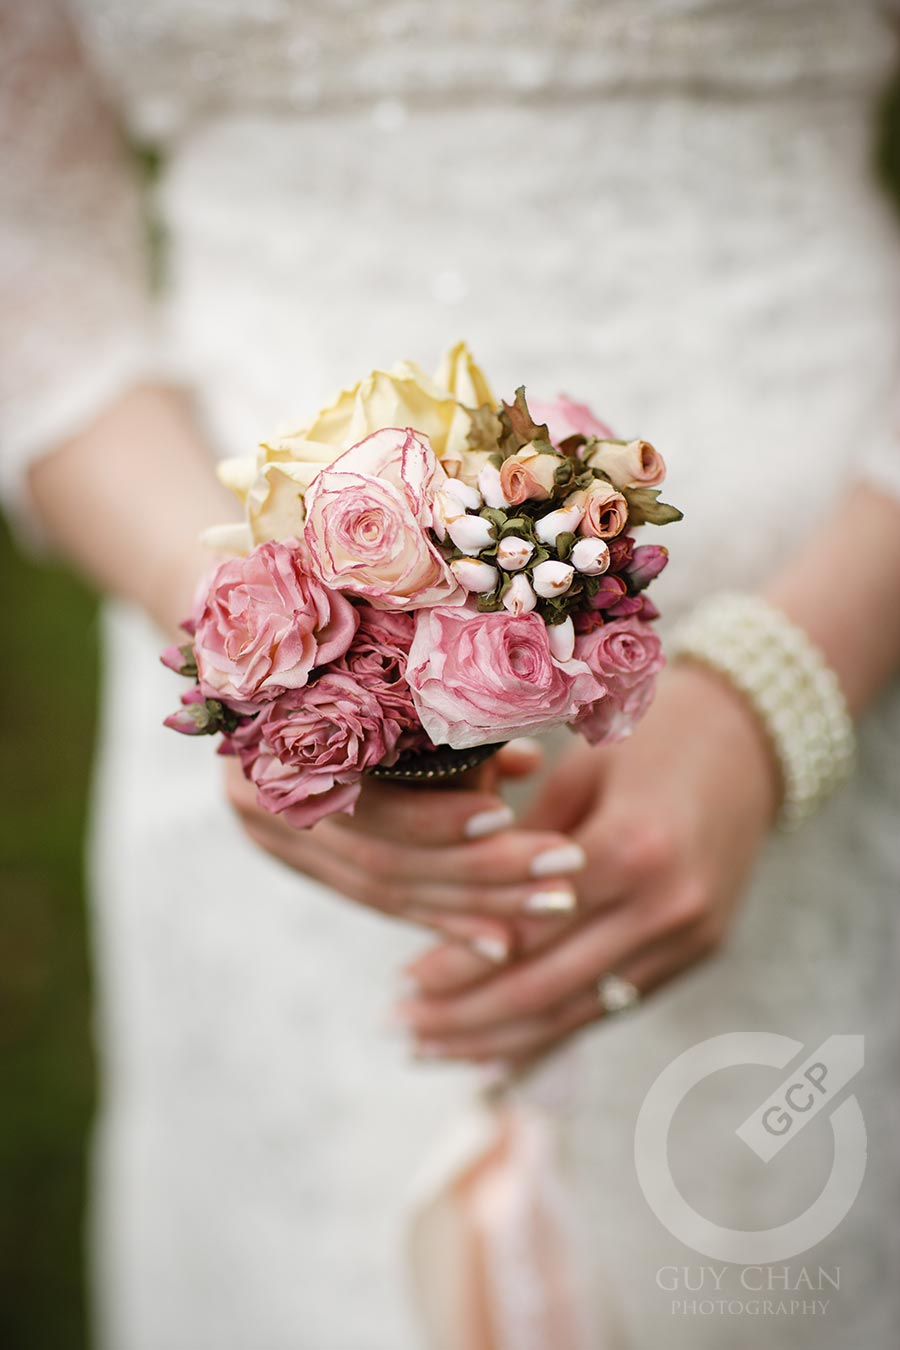 The Bouquet Was Made Mostly Of Fabric Flowers From My Bridal Shower With A Few Own Coffee Filter Roses